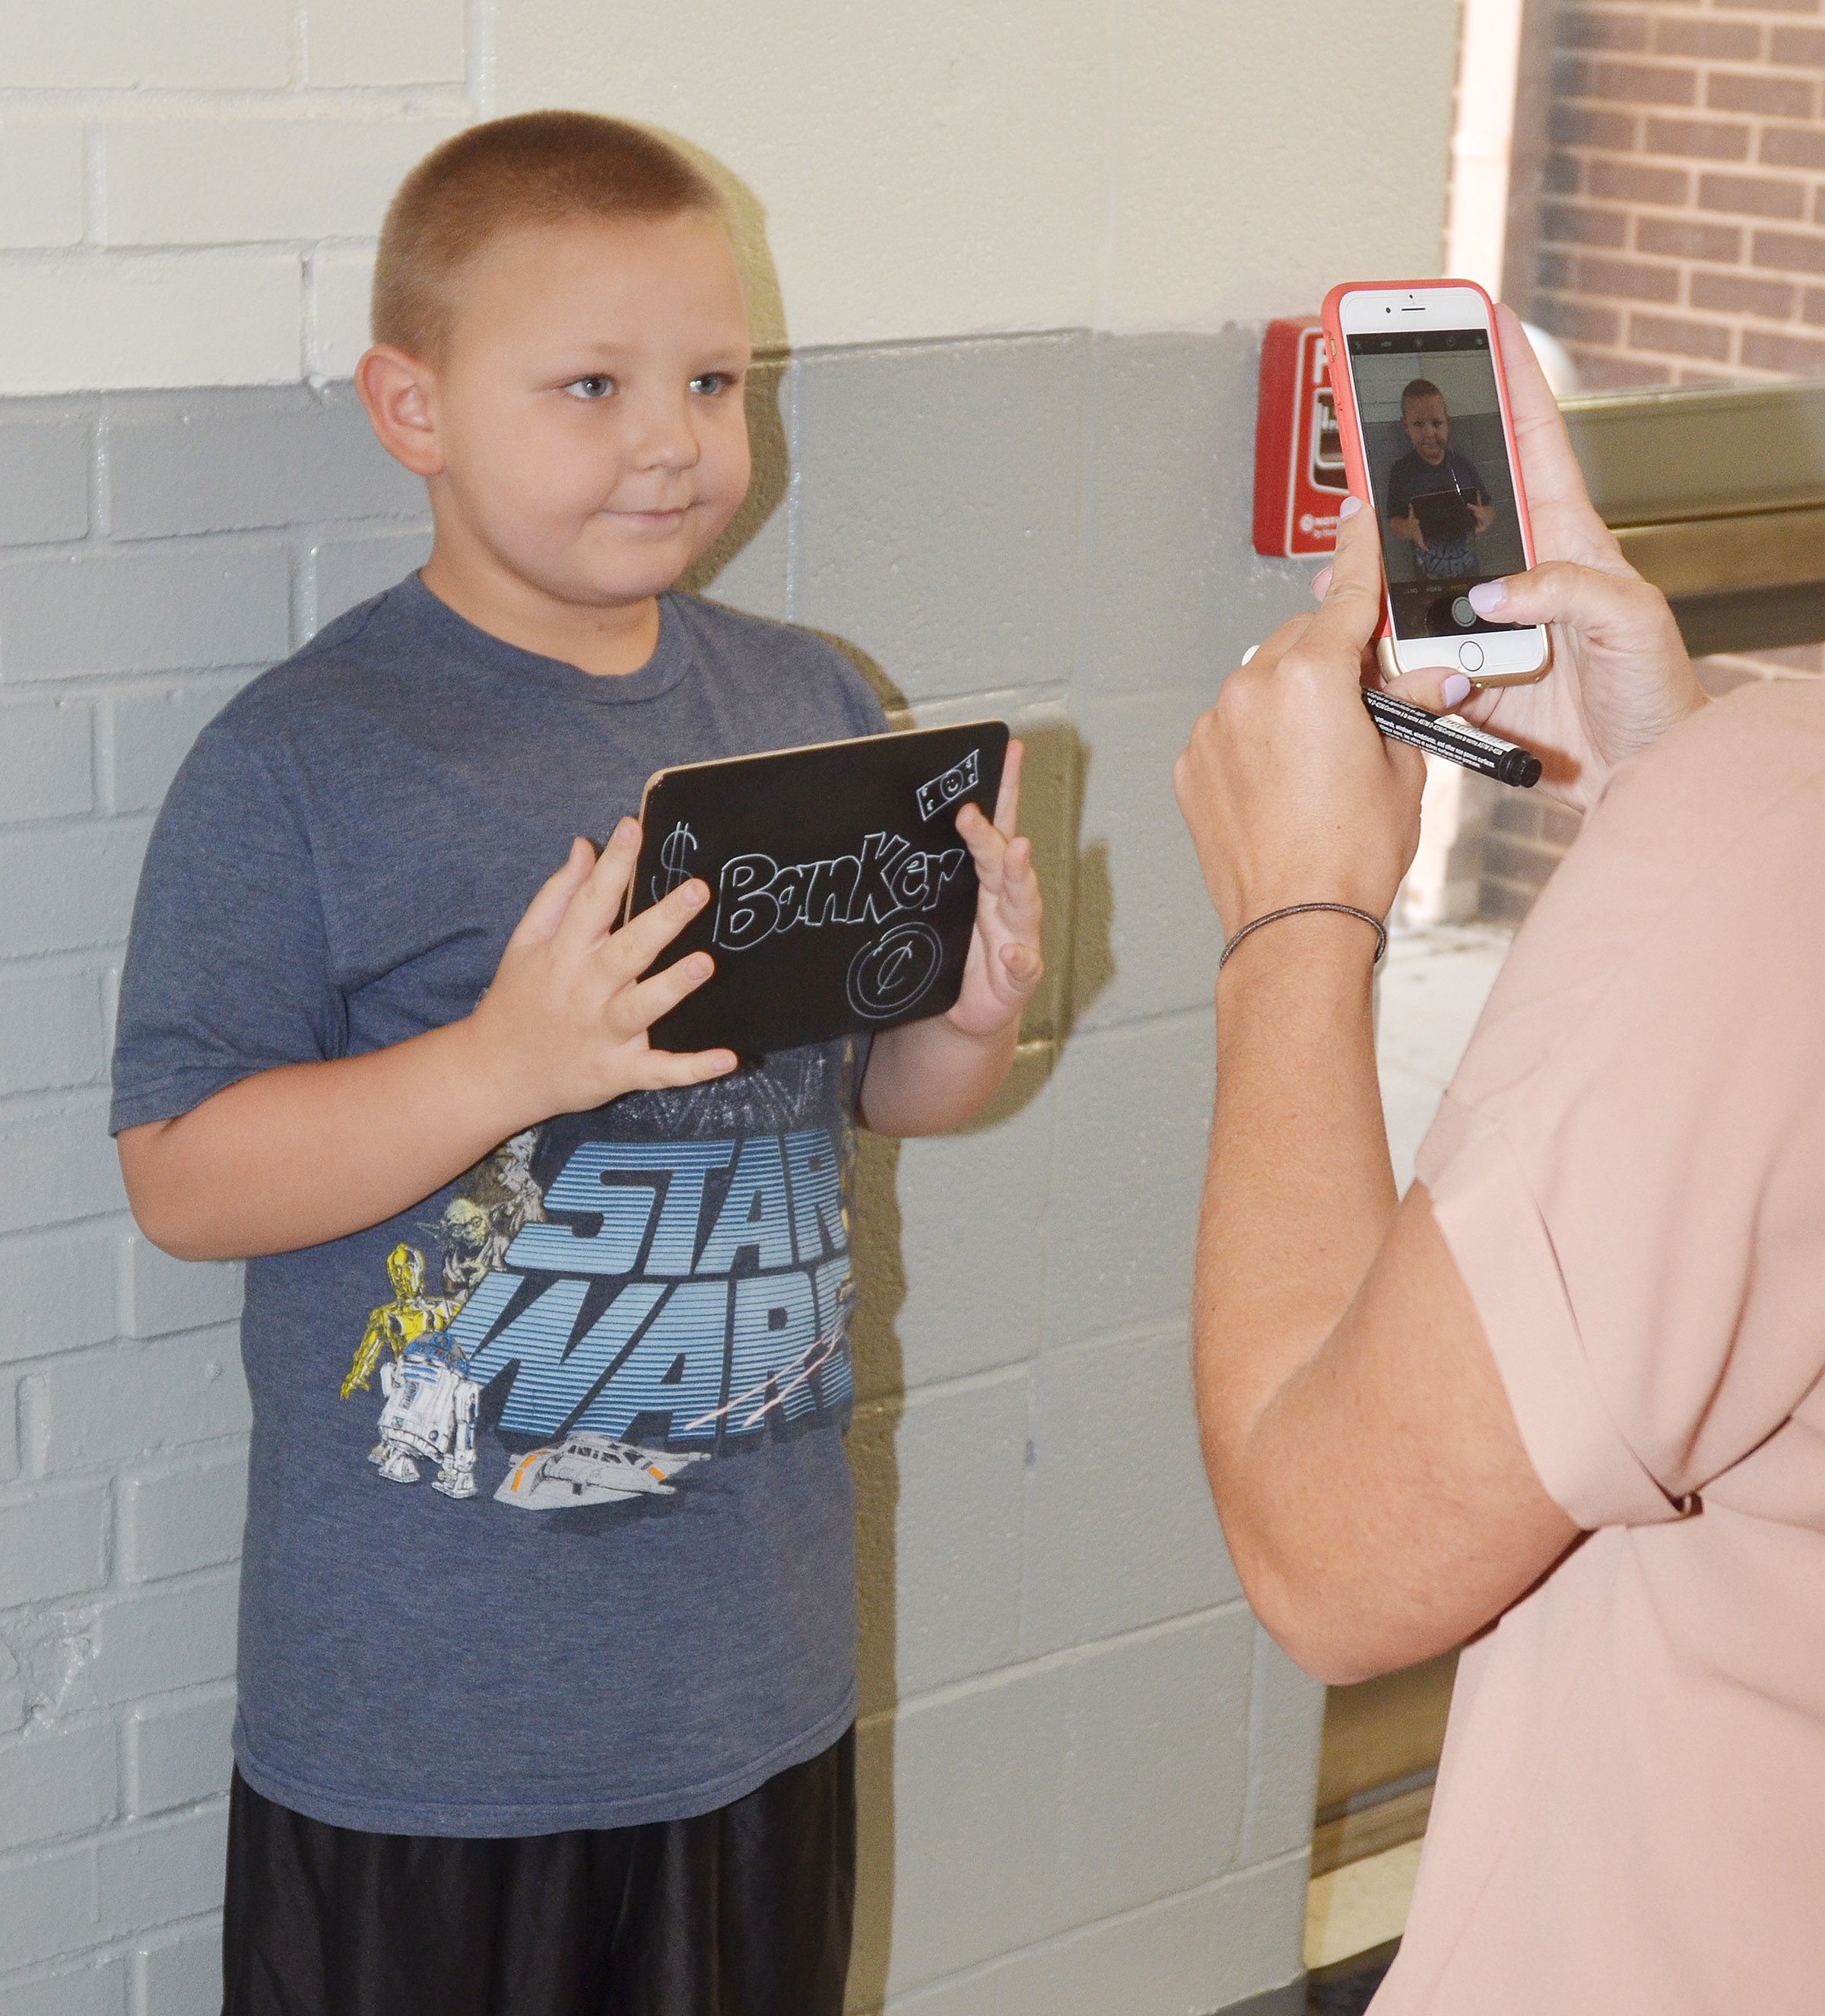 CES third-grader Peyton Mitchell, who wants to be a banker when he gets older, smiles for a photo.